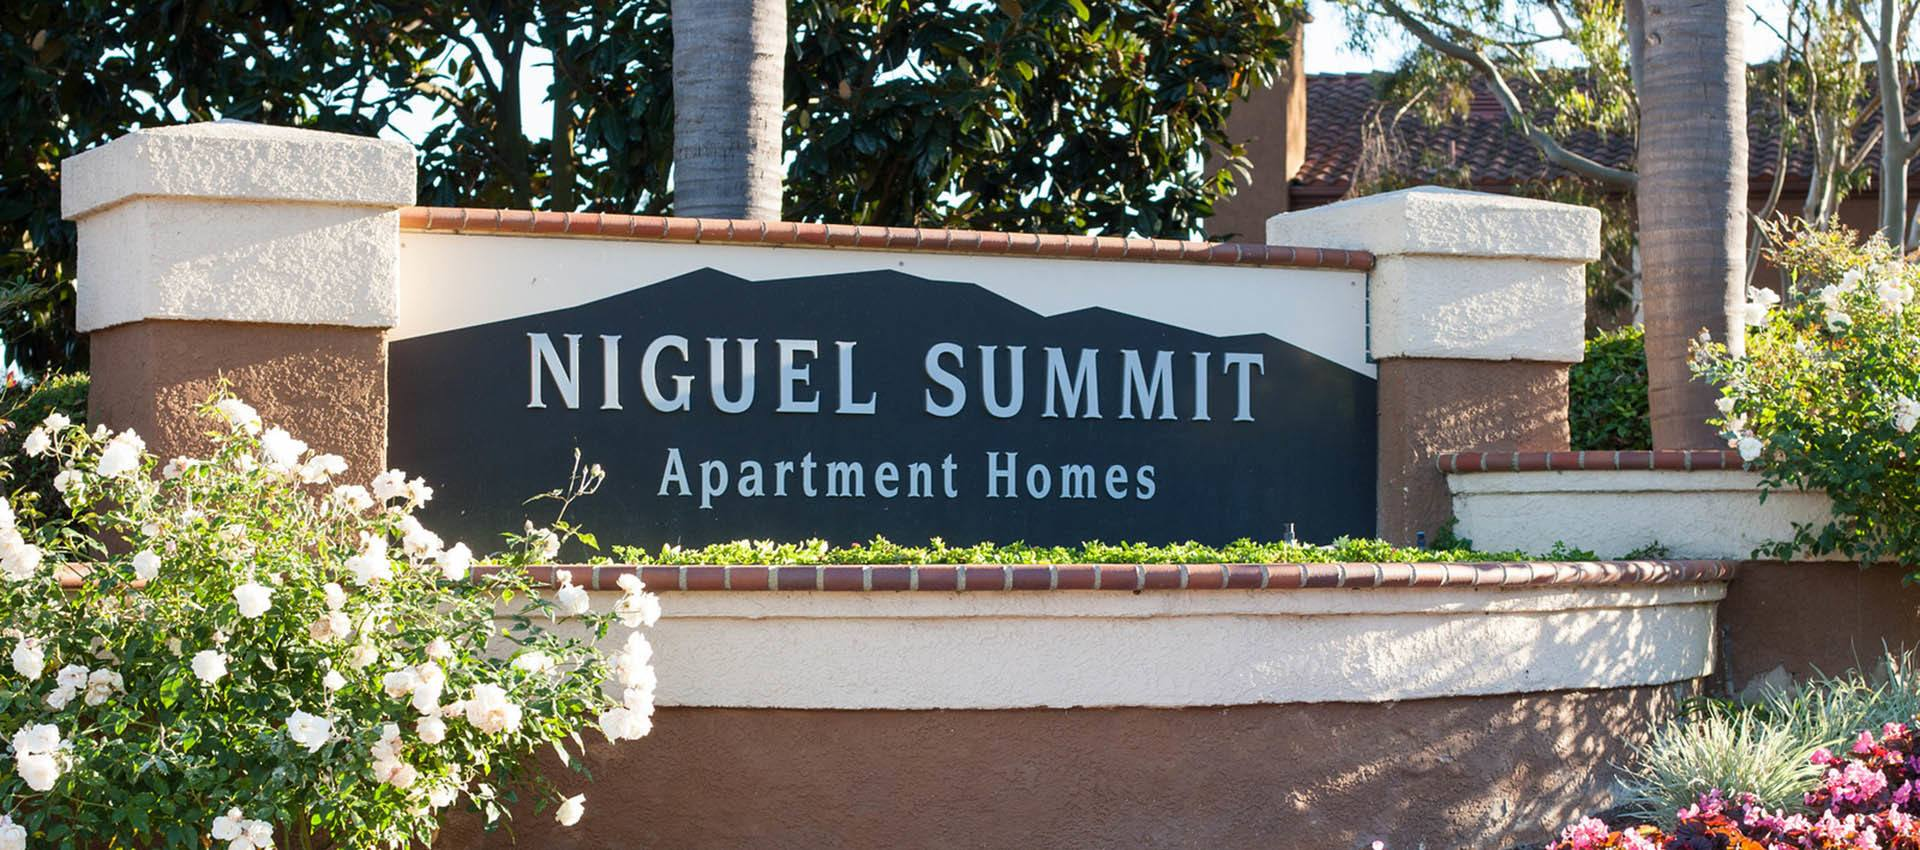 Signage at Niguel Summit Condominium Rentals in Laguna Niguel, CA